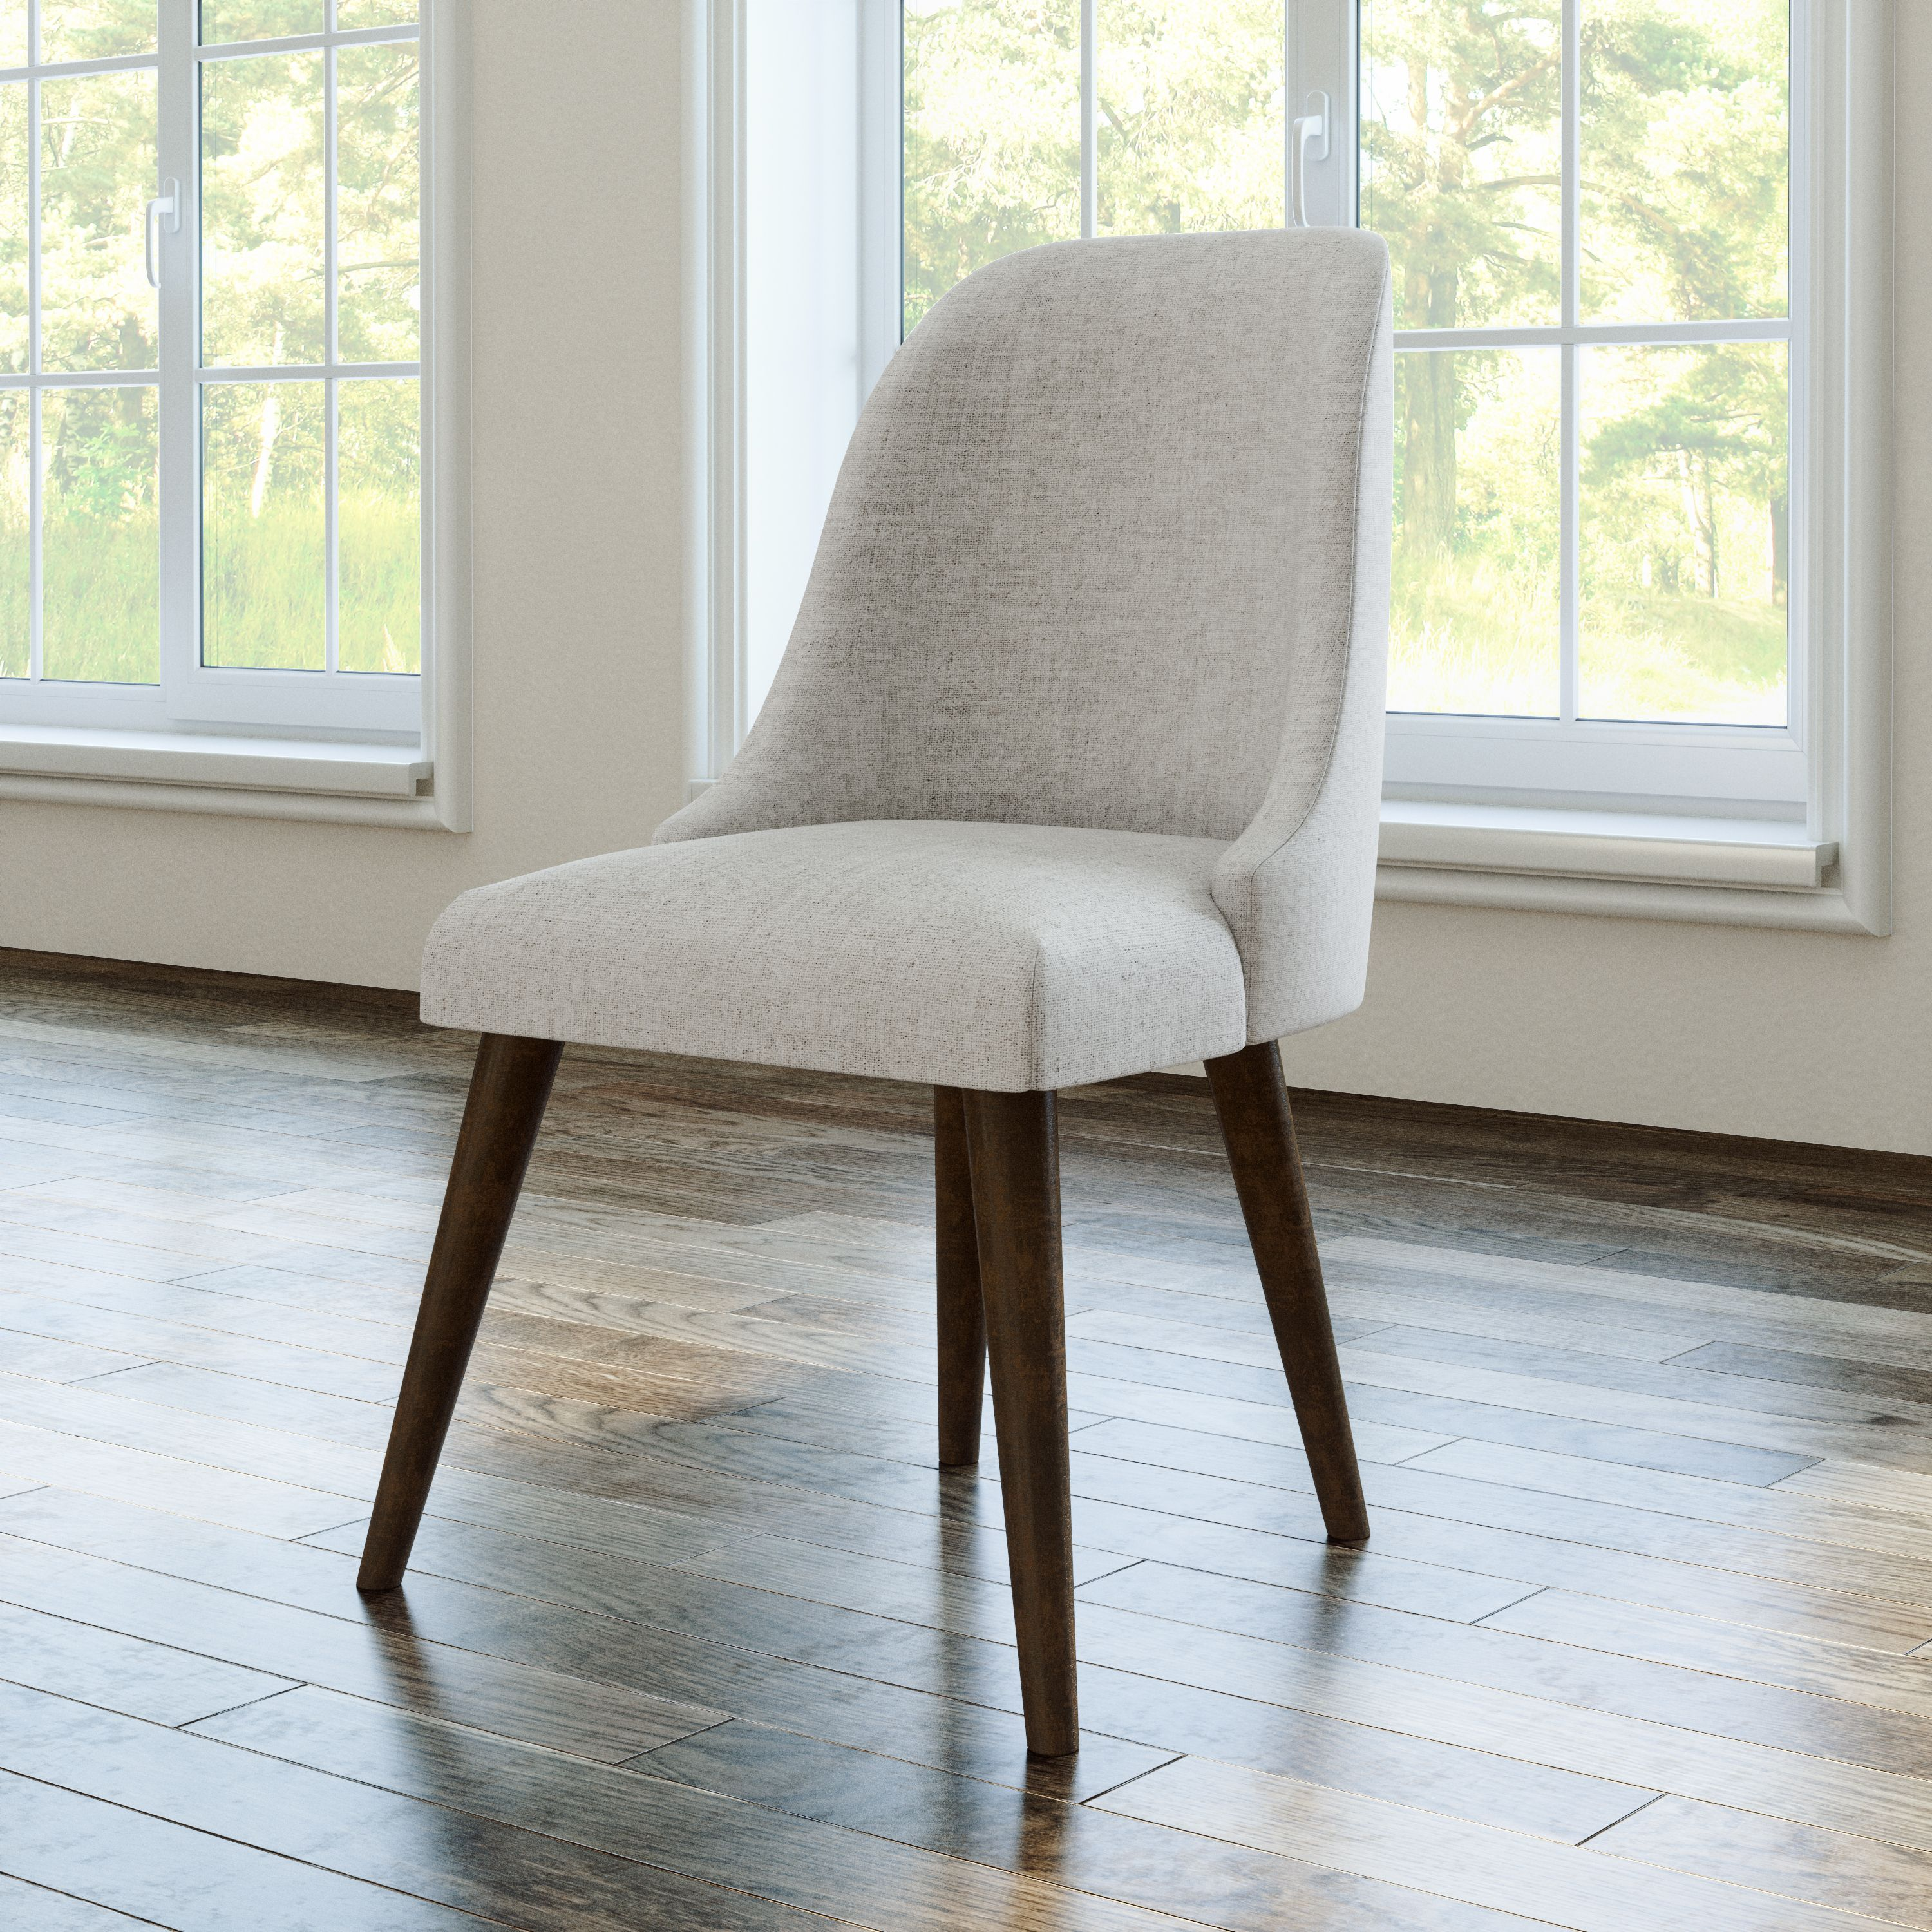 Devon claire talia upholstered mid century dining chair